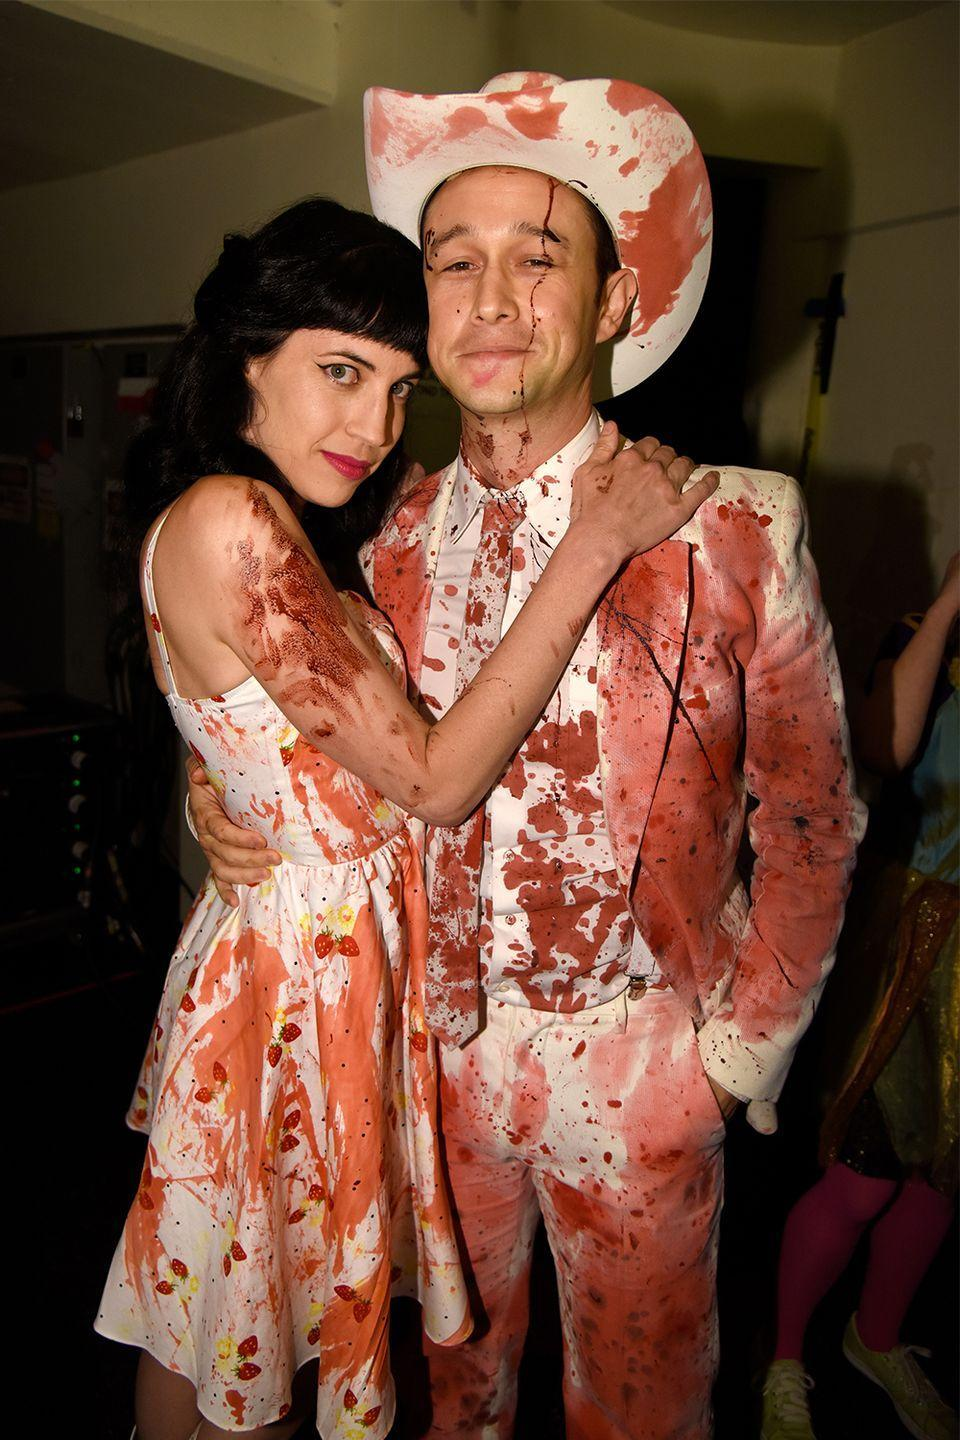 <p><strong>How long they've been together:</strong> Gordon-Levitt claimed he was off the market in 2013 and the couple were wed in a secret ceremony in 2014. They have two kids together.<br></p><p><strong>Why you forgot they're together:</strong> They're basically the gold standard when it comes to discretion—Gordon-Levitt rarely (if ever) talks about his marriage to the businesswoman or their children with the press and has maintained his privacy for most of his career.<br></p>